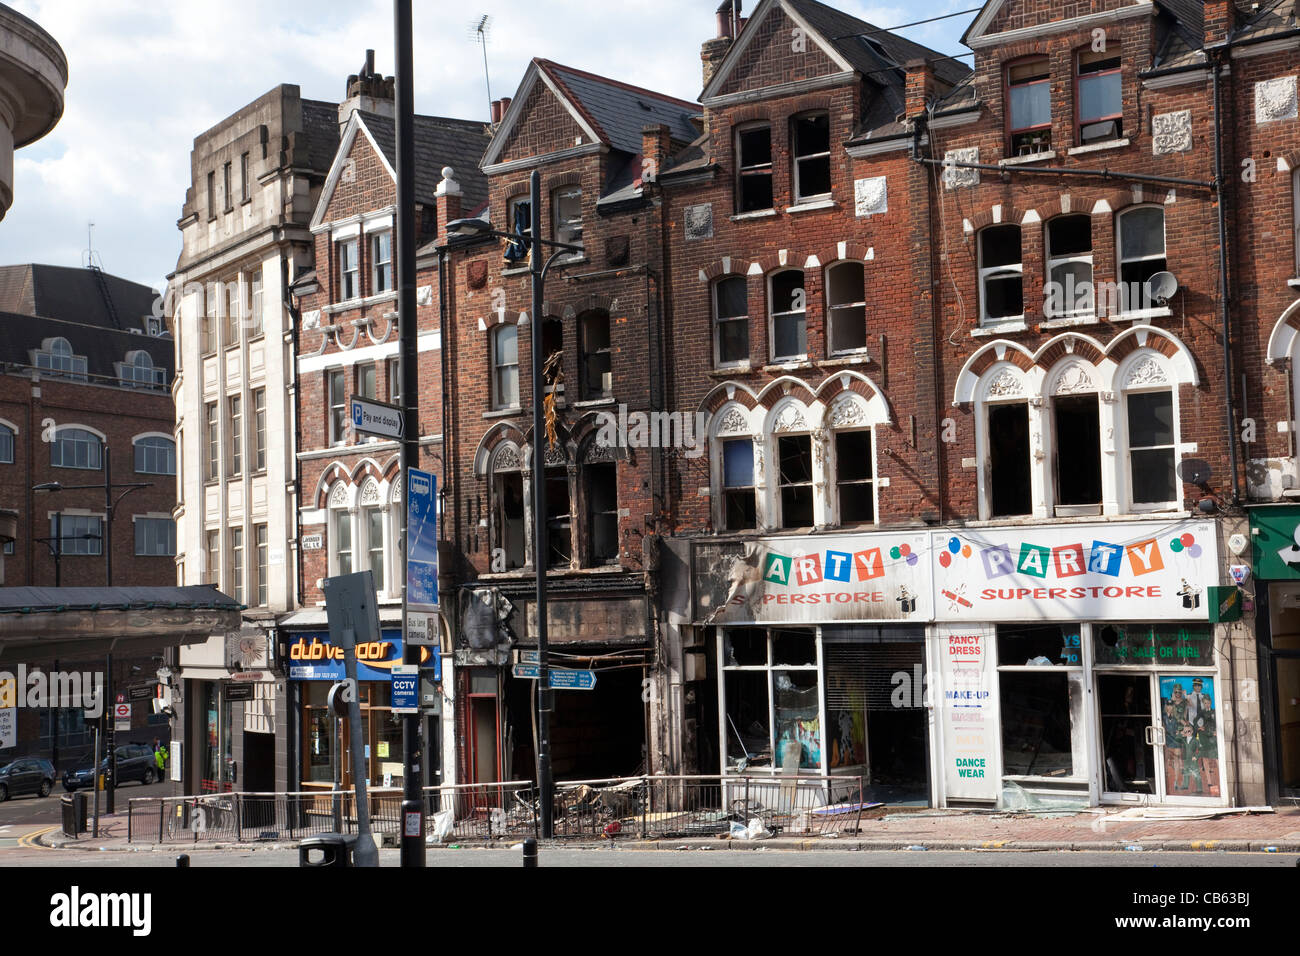 Aftermath of the summer riots and looting across London this August 2011, Clapham London UK. Photo:Jeff Gilbert - Stock Image